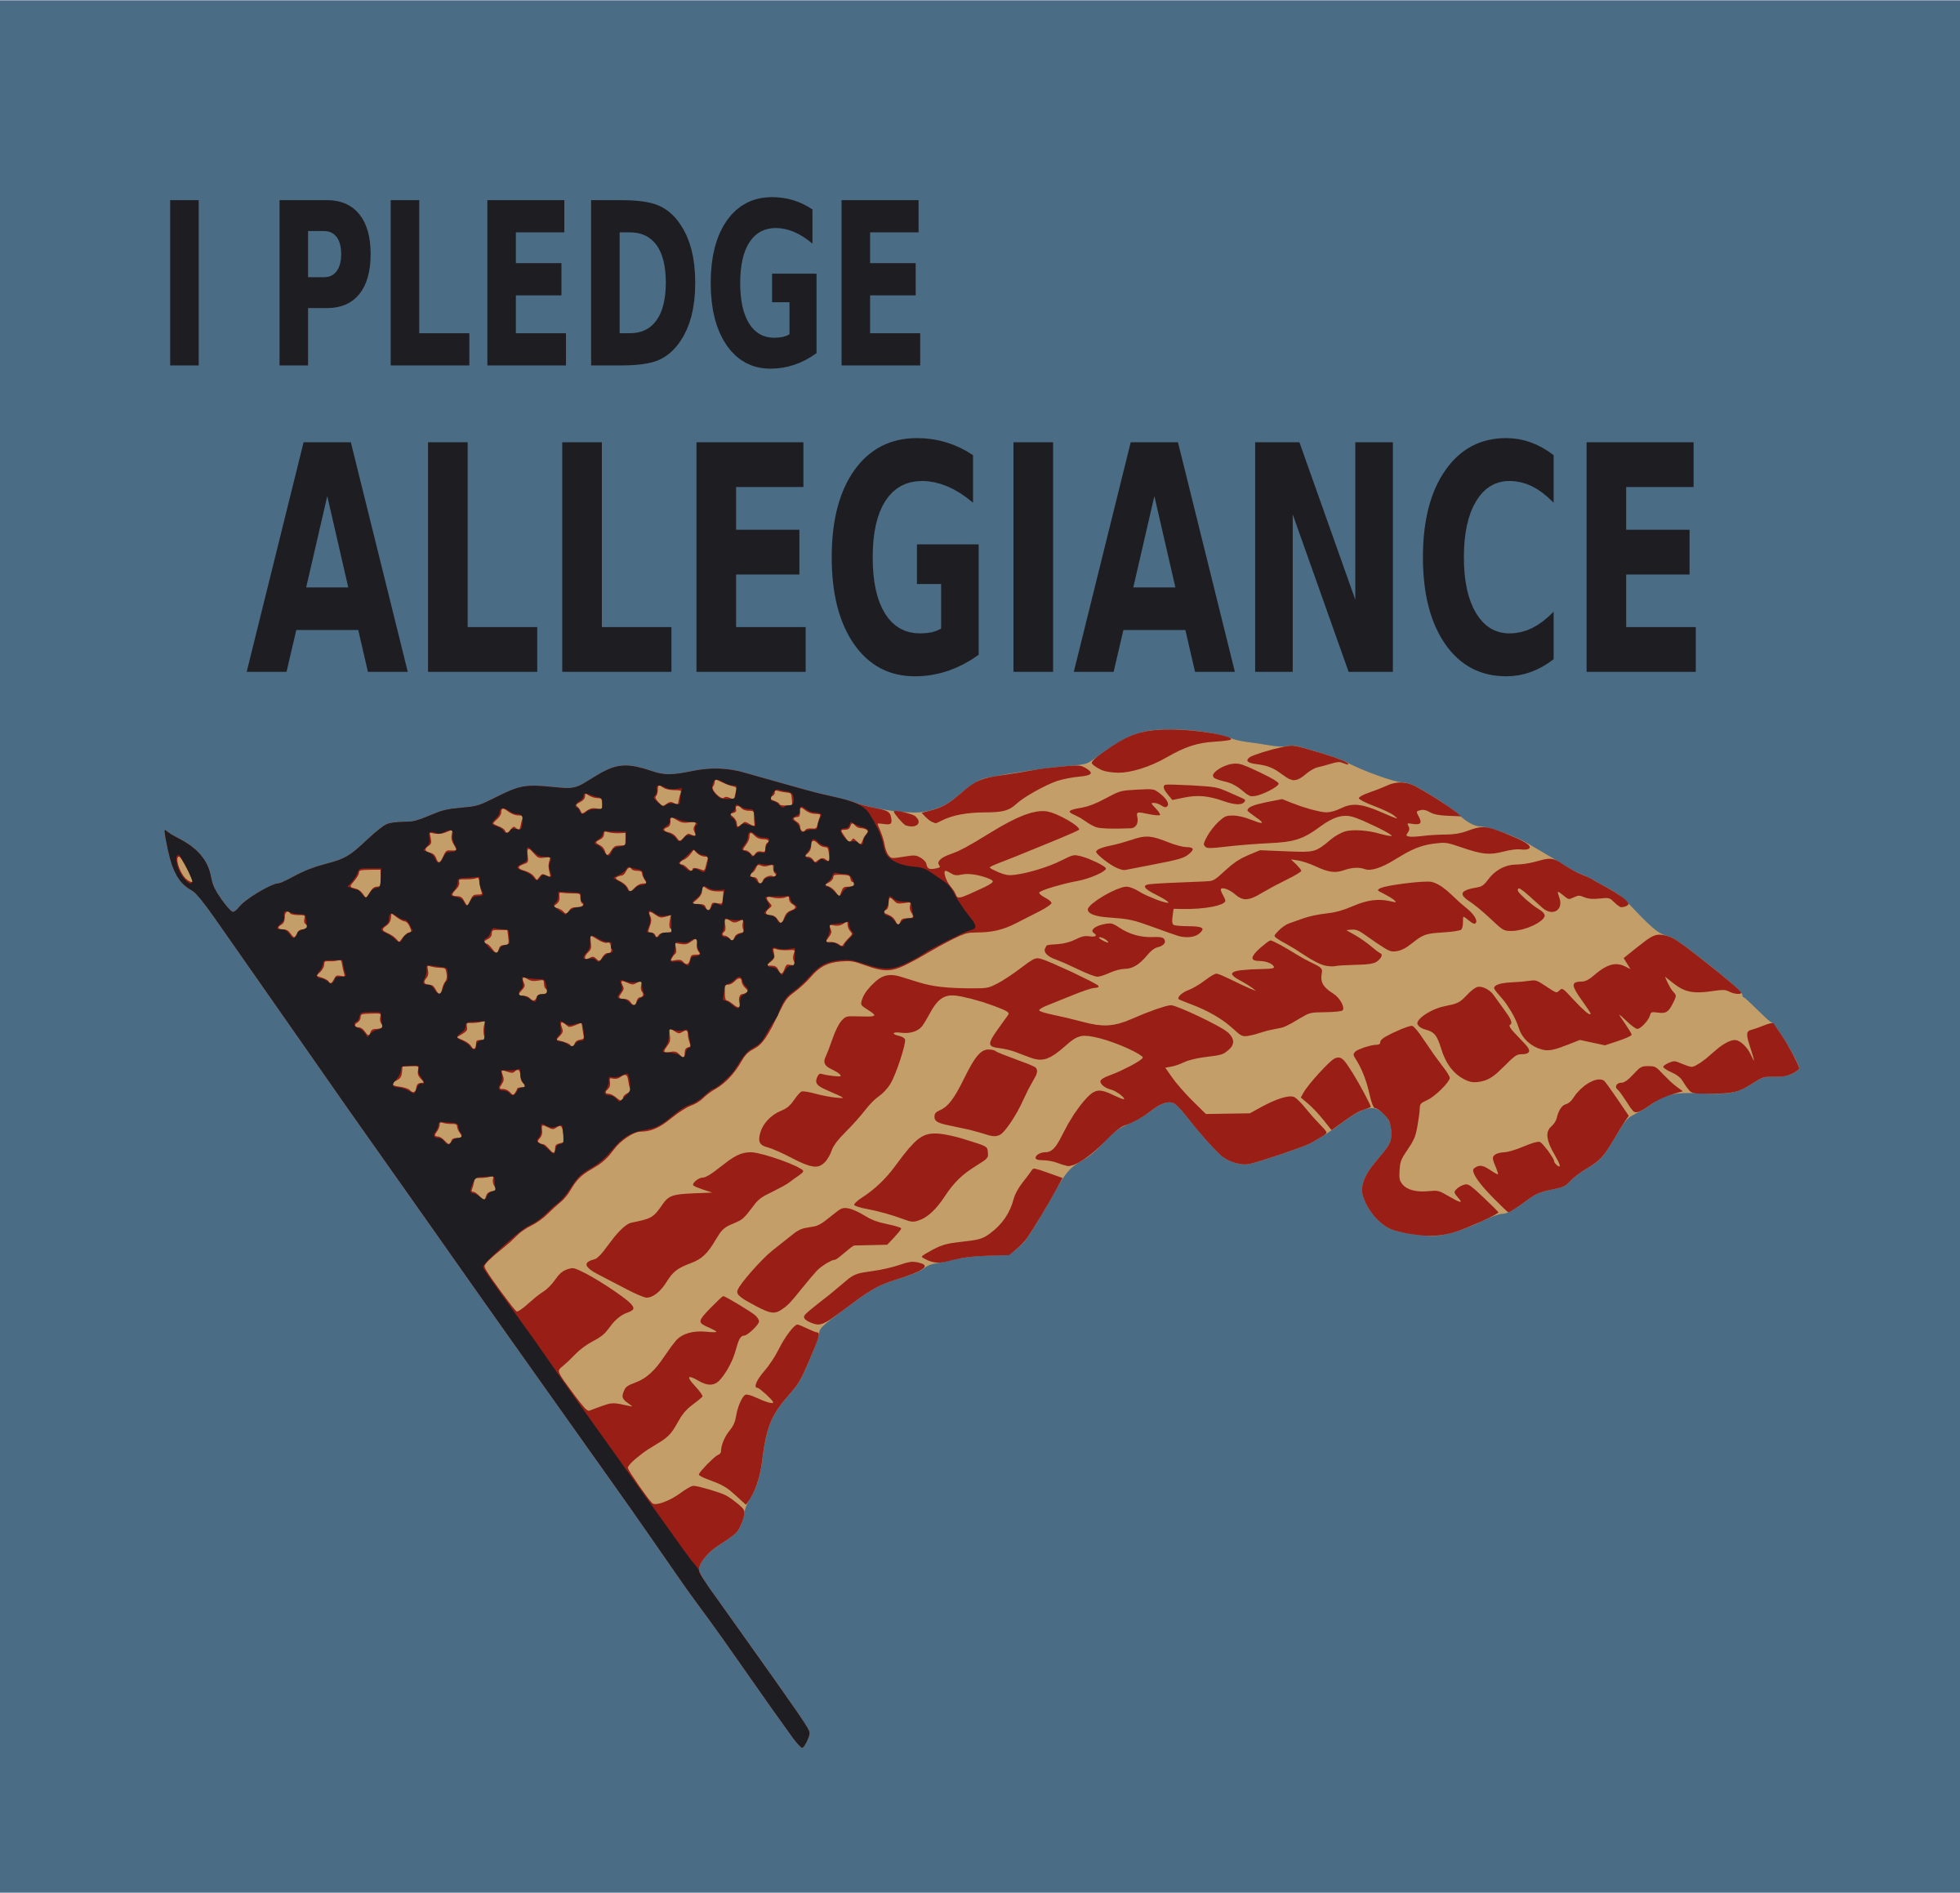 Pledge allegiance by Firkin